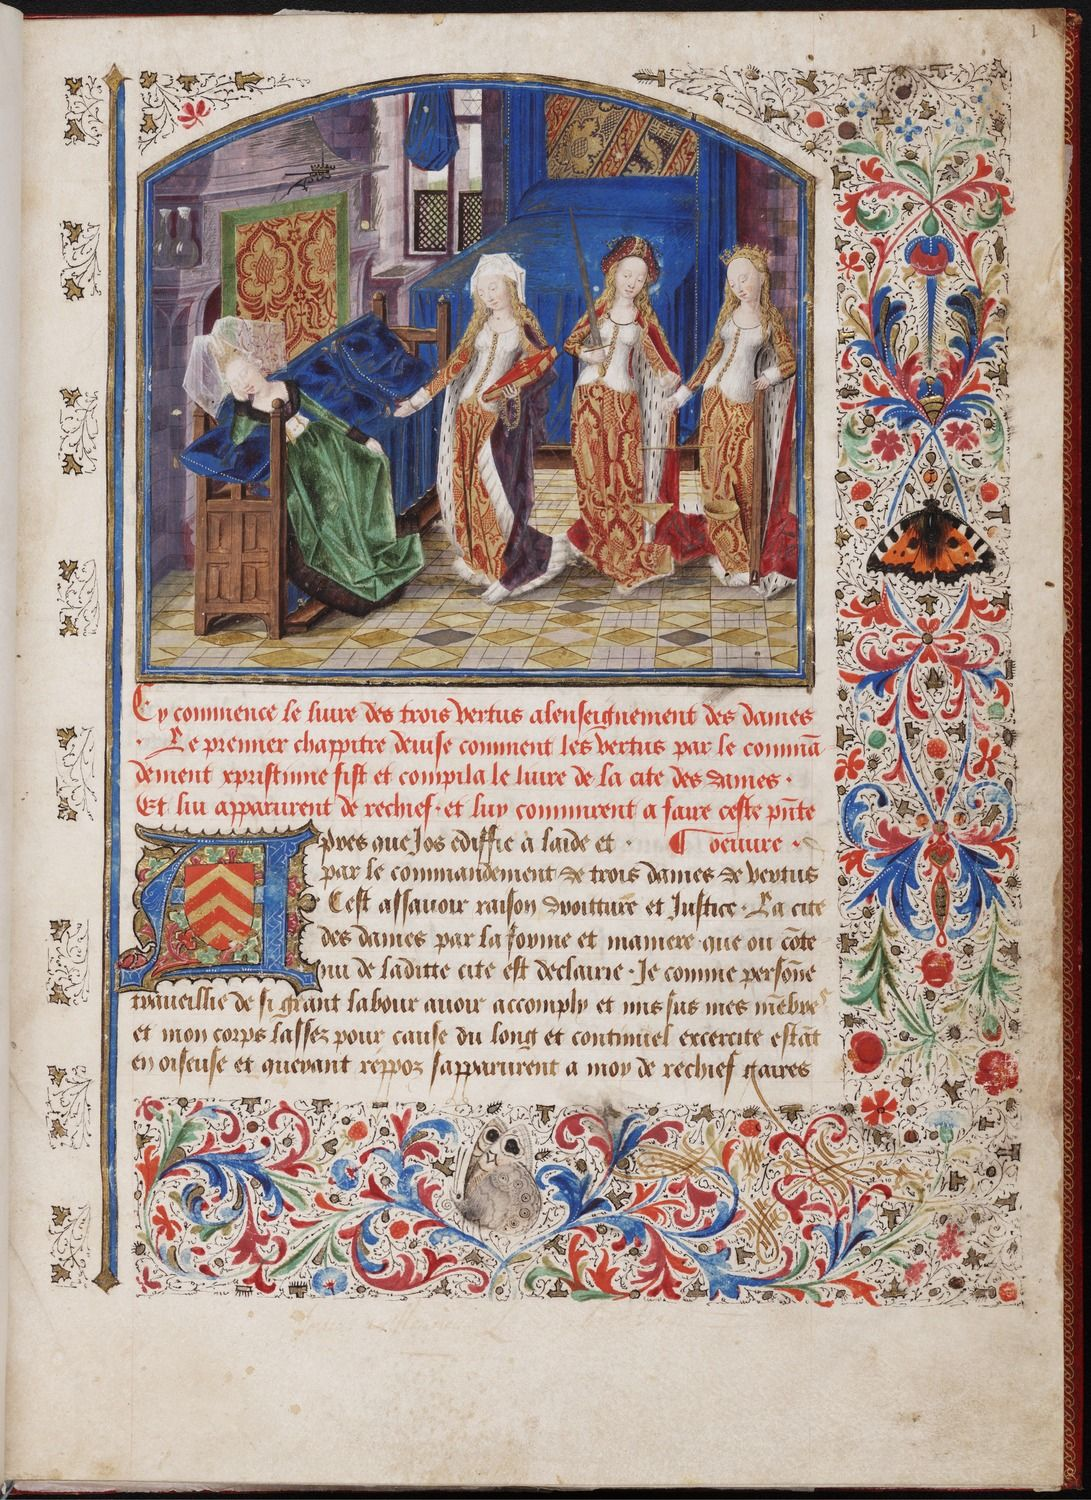 Christine de Pizan, Le Livre des Trois Vertus. [Livre des trois vertues] Call Number:	 Beinecke MS 427  (Request the physical item to view in our reading room) Creator:	Christine, de Pizan, ca. 1364-ca. 1431 Rambures Master, fl. 1454-1475